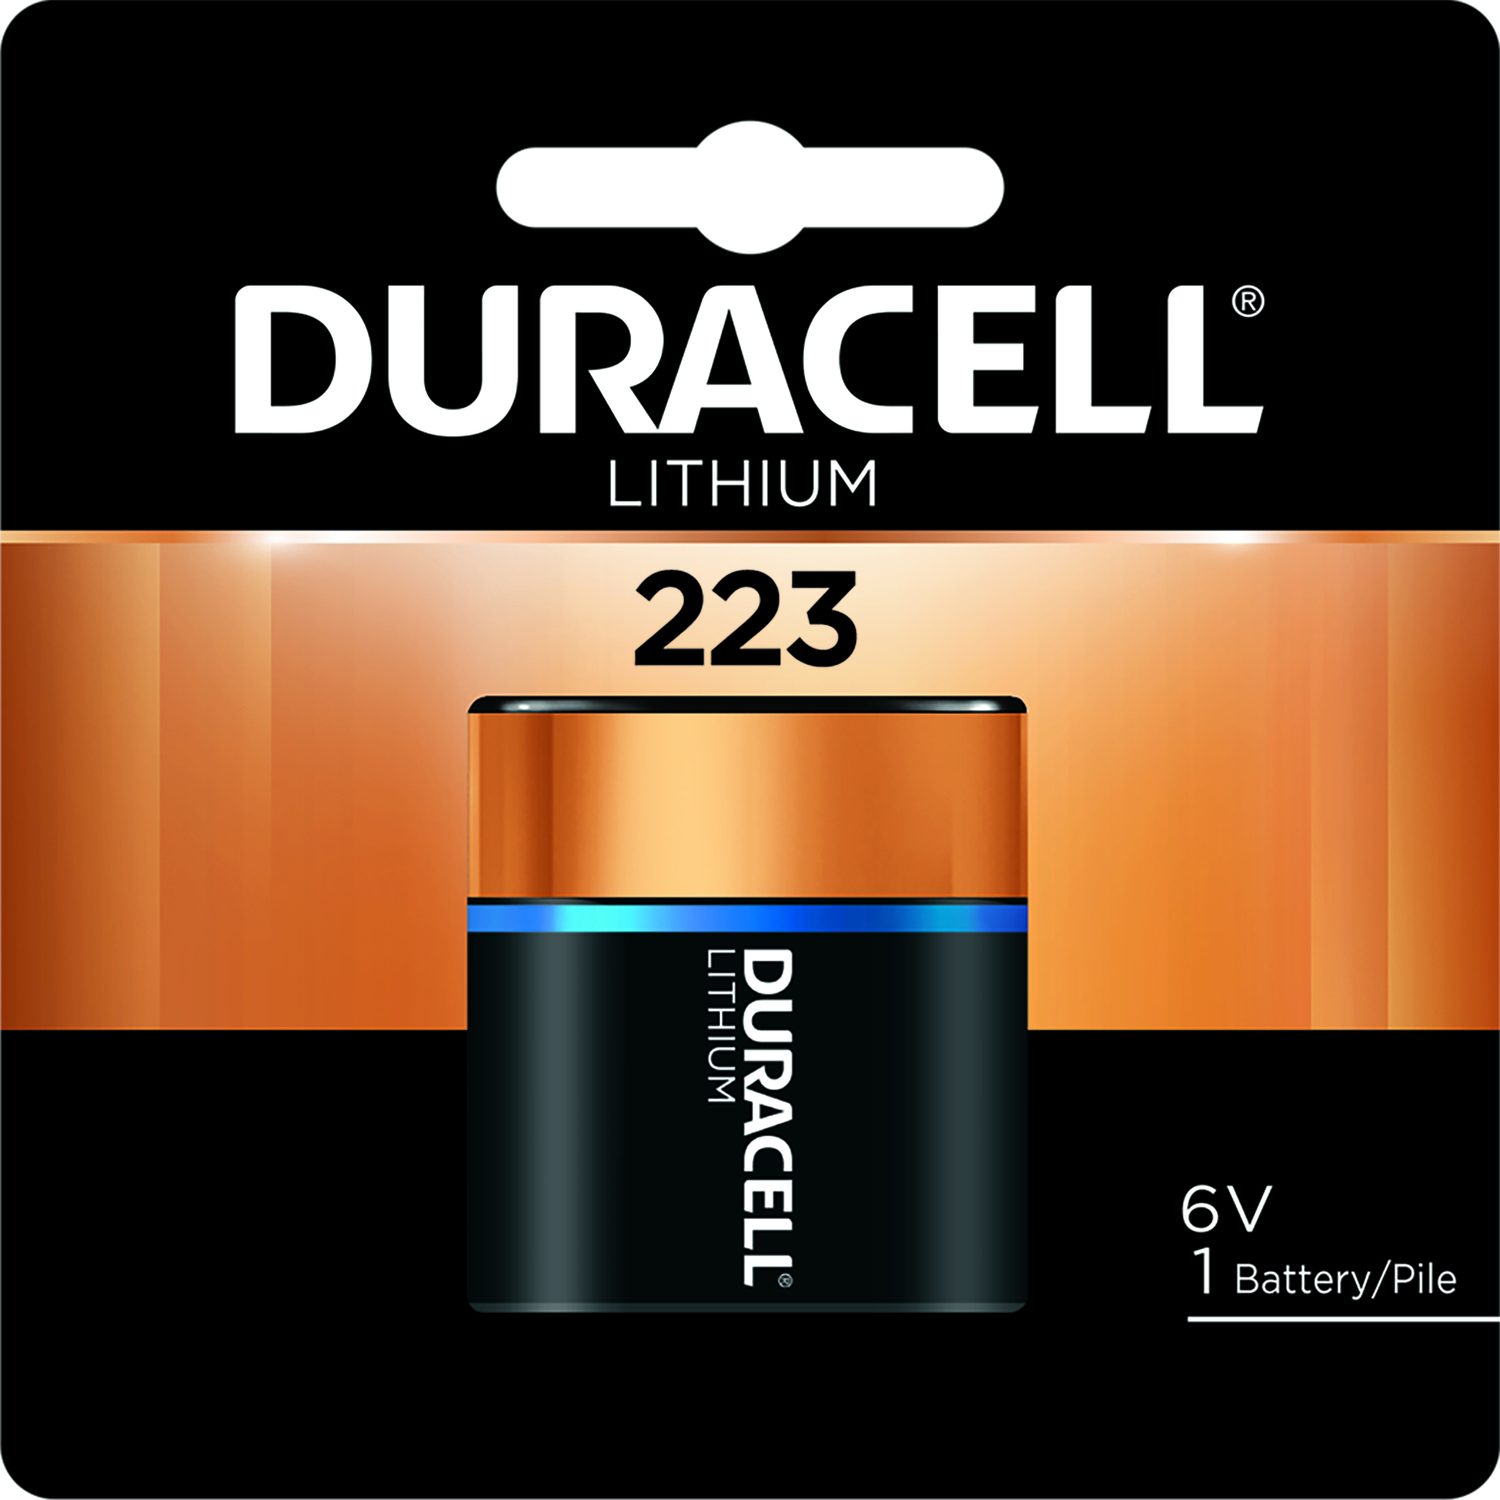 Duracell  223  Camera Battery  DL223ABPK  1 pk Lithium